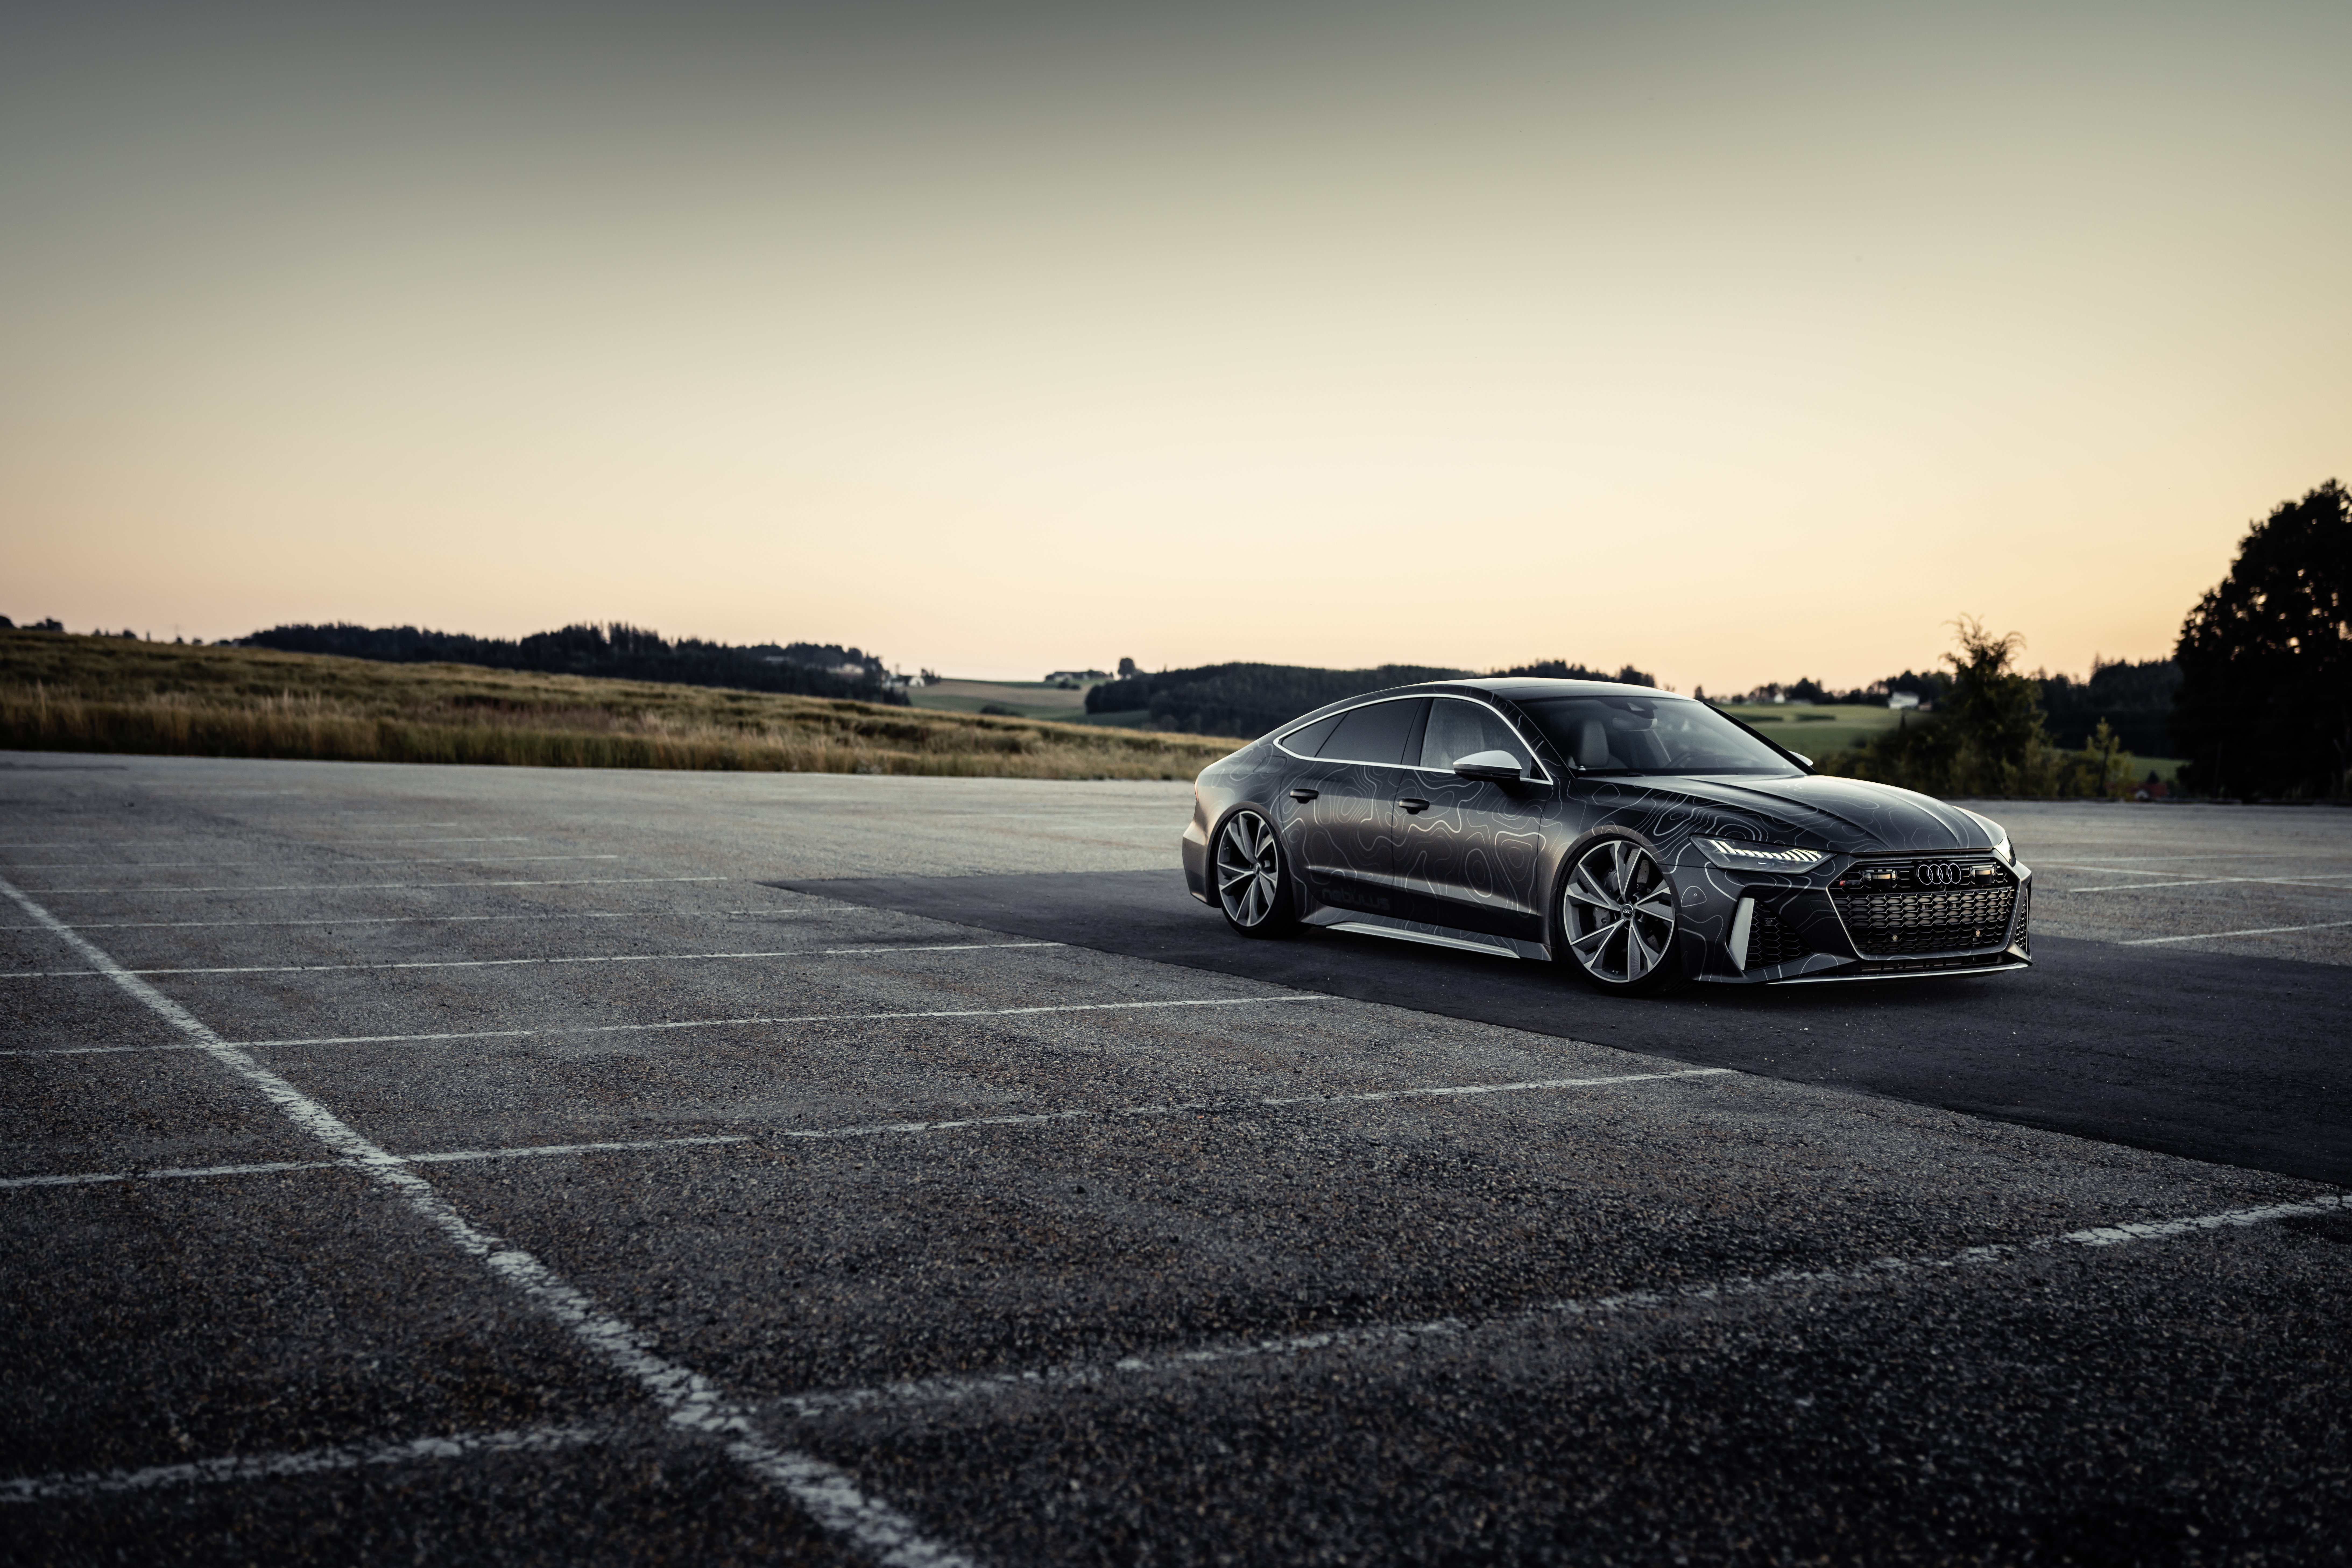 5120x2880 Black Box Richter Audi Rs 7 Sportback 2020 5k Hd 4k Wallpapers Images Backgrounds Photos And Pictures